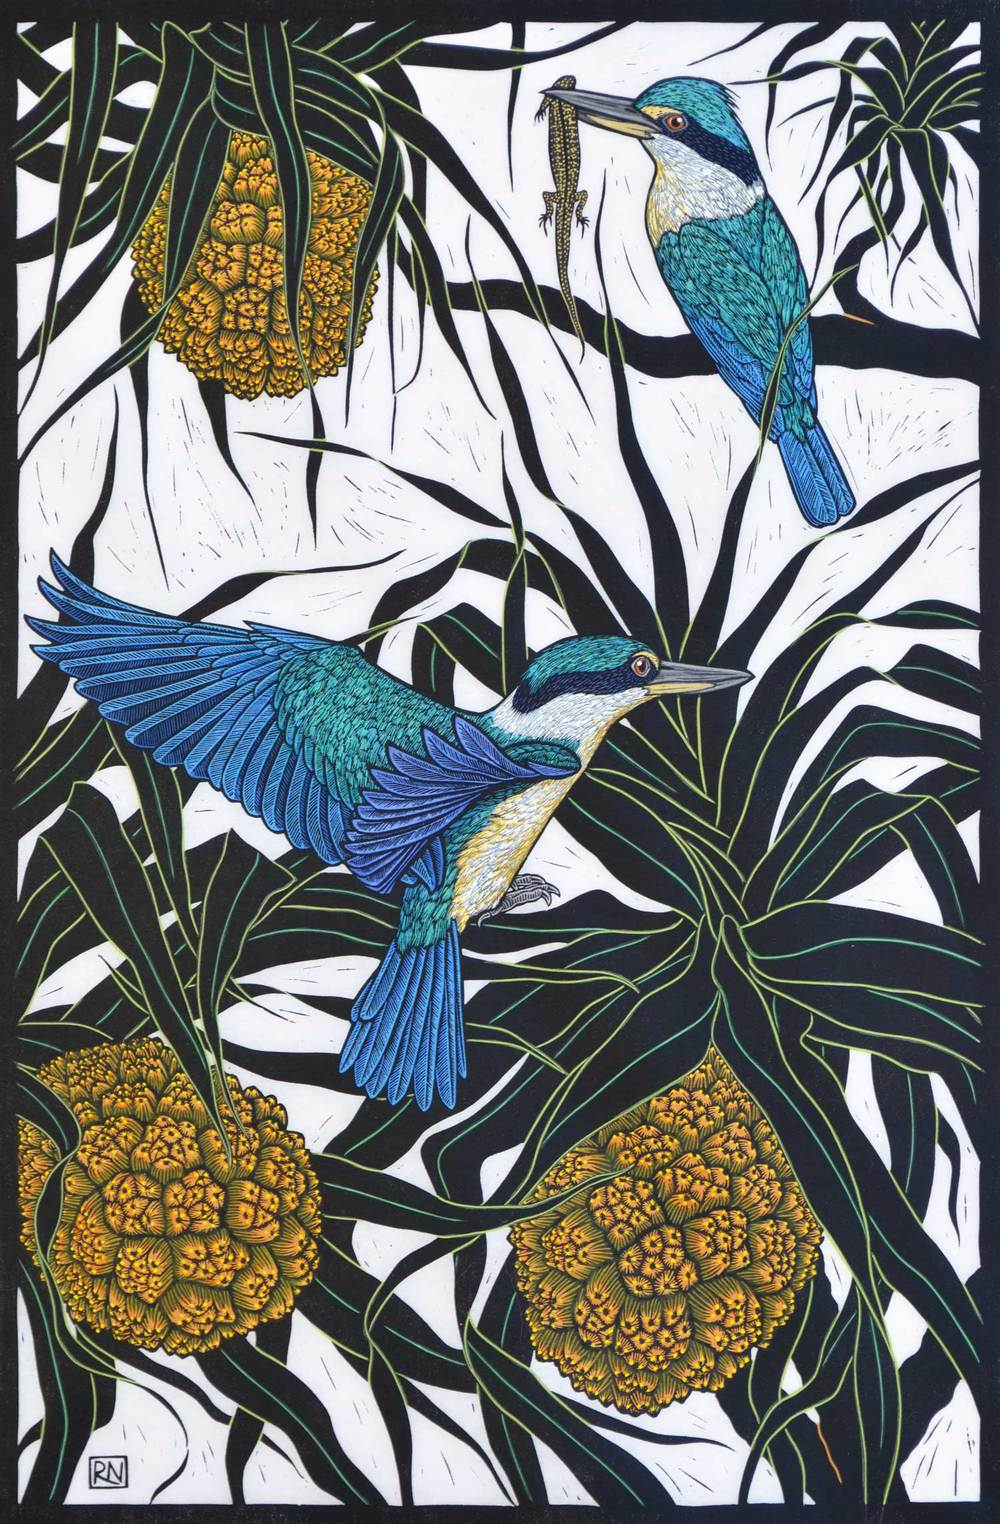 SACRED KINGFISHER  75 X 50 CM    EDITION OF 50  HAND COLOURED LINOCUT ON HANDMADE JAPANESE PAPER  $1,550